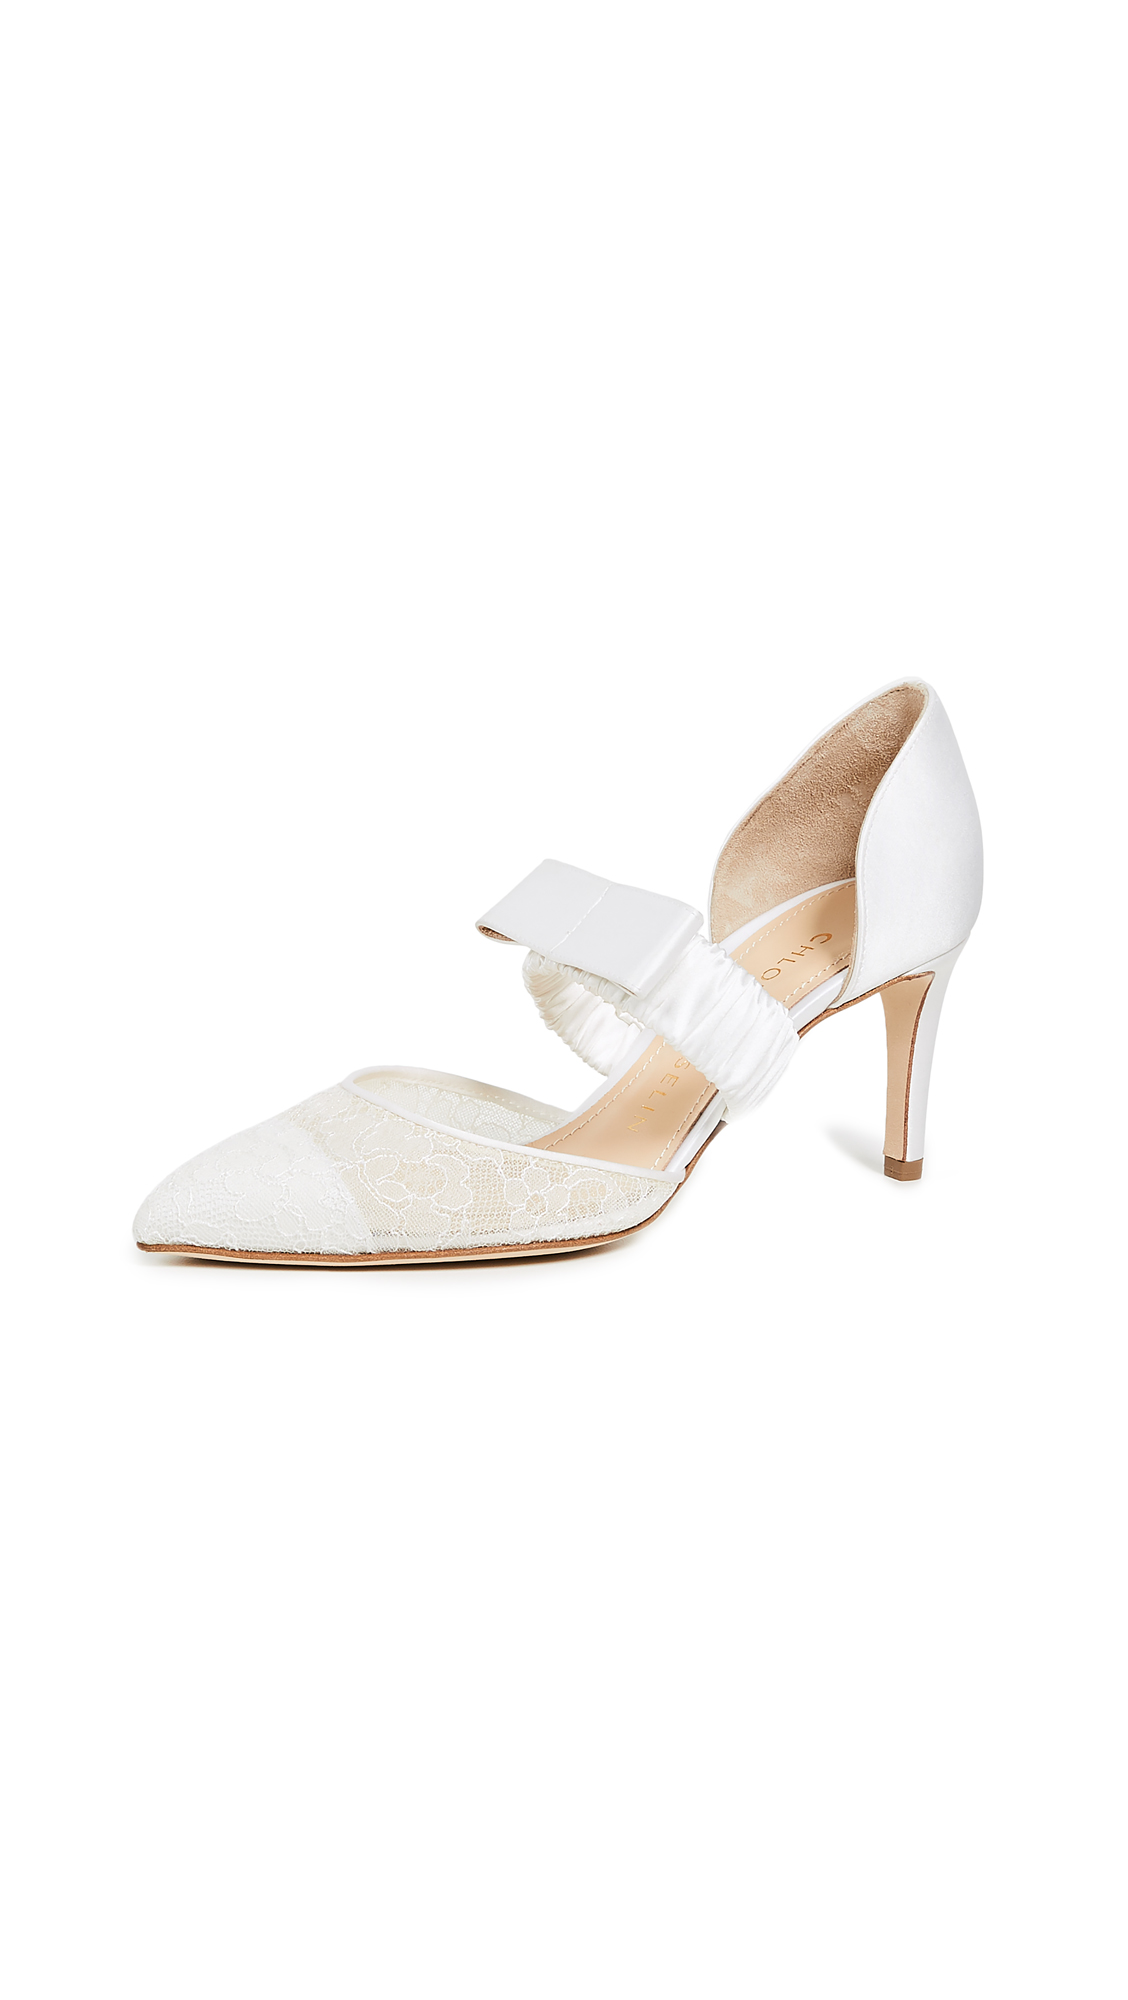 Chloe Gosselin Lily 70 Lace Pumps - White